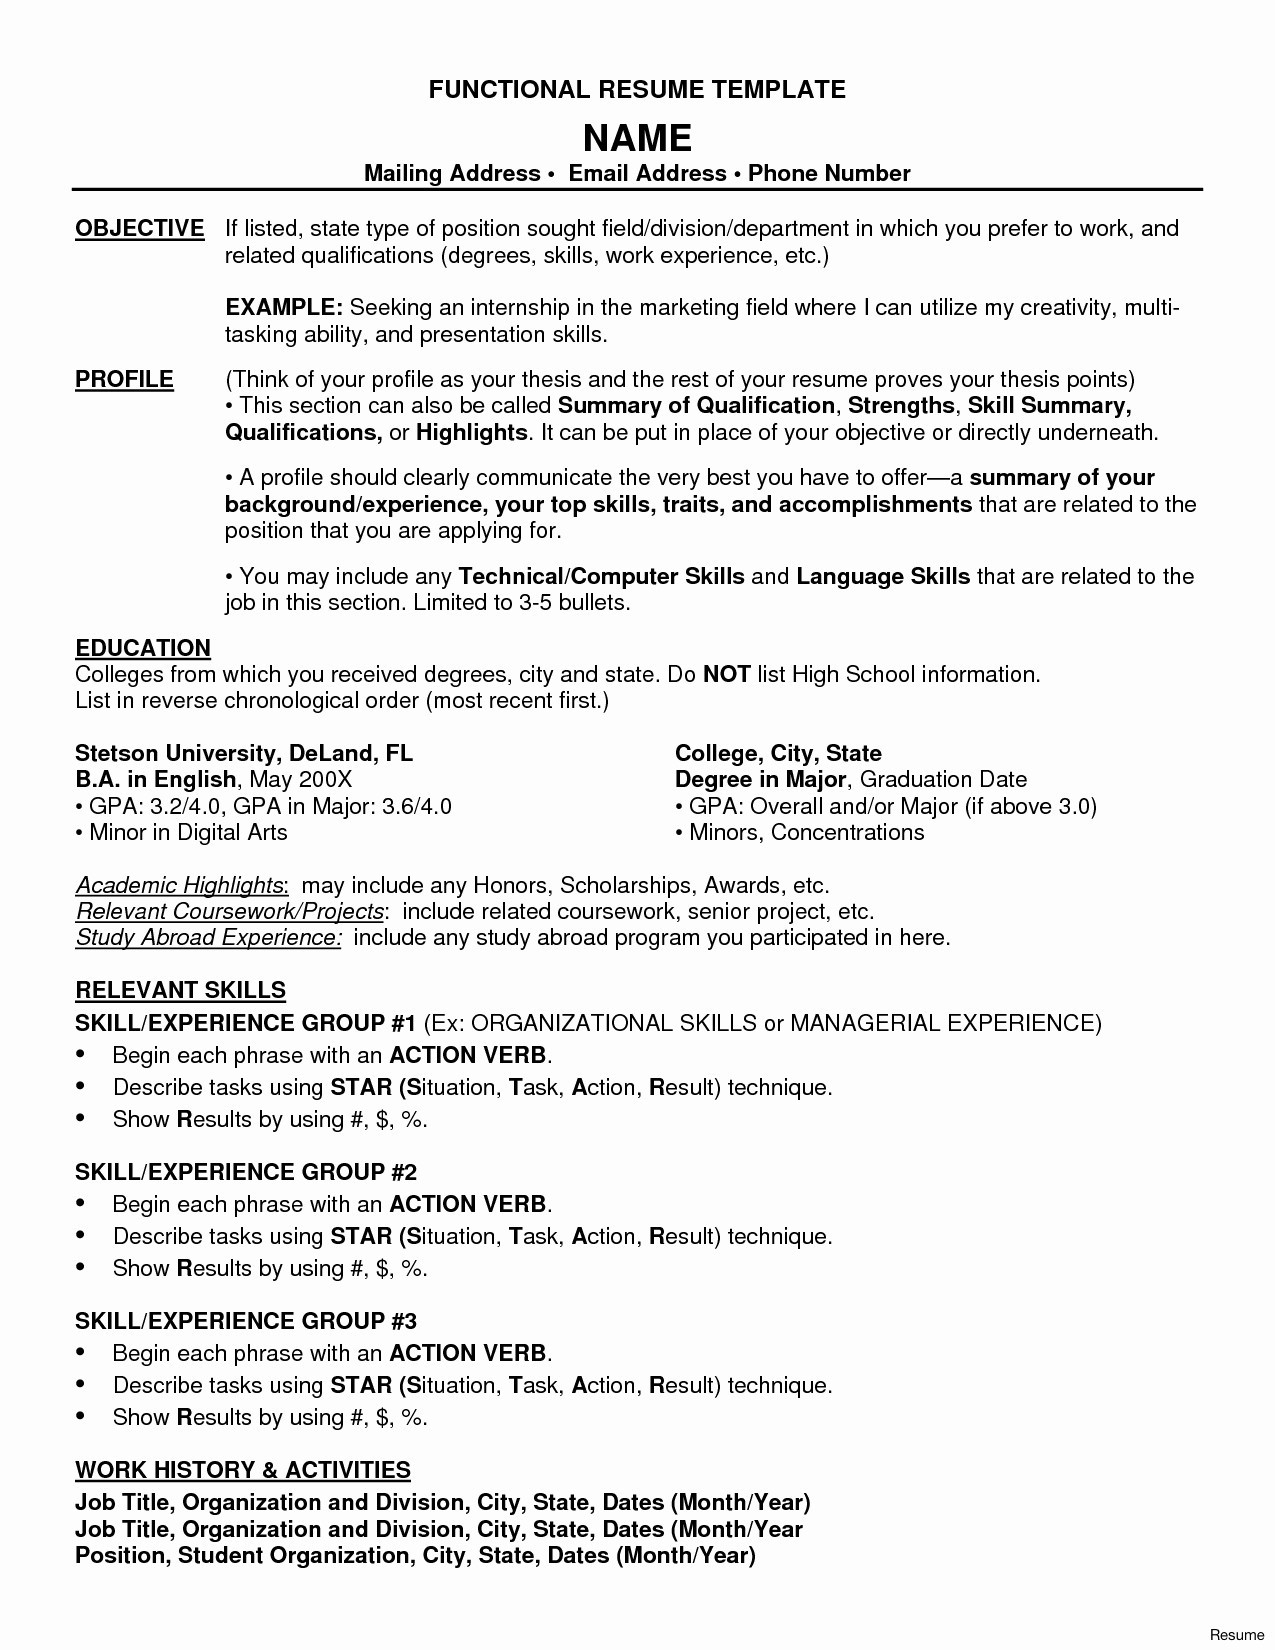 Stay at Home Mom Job Description for Resume - Sample Resume for Stay at Home Mom Returning to Work